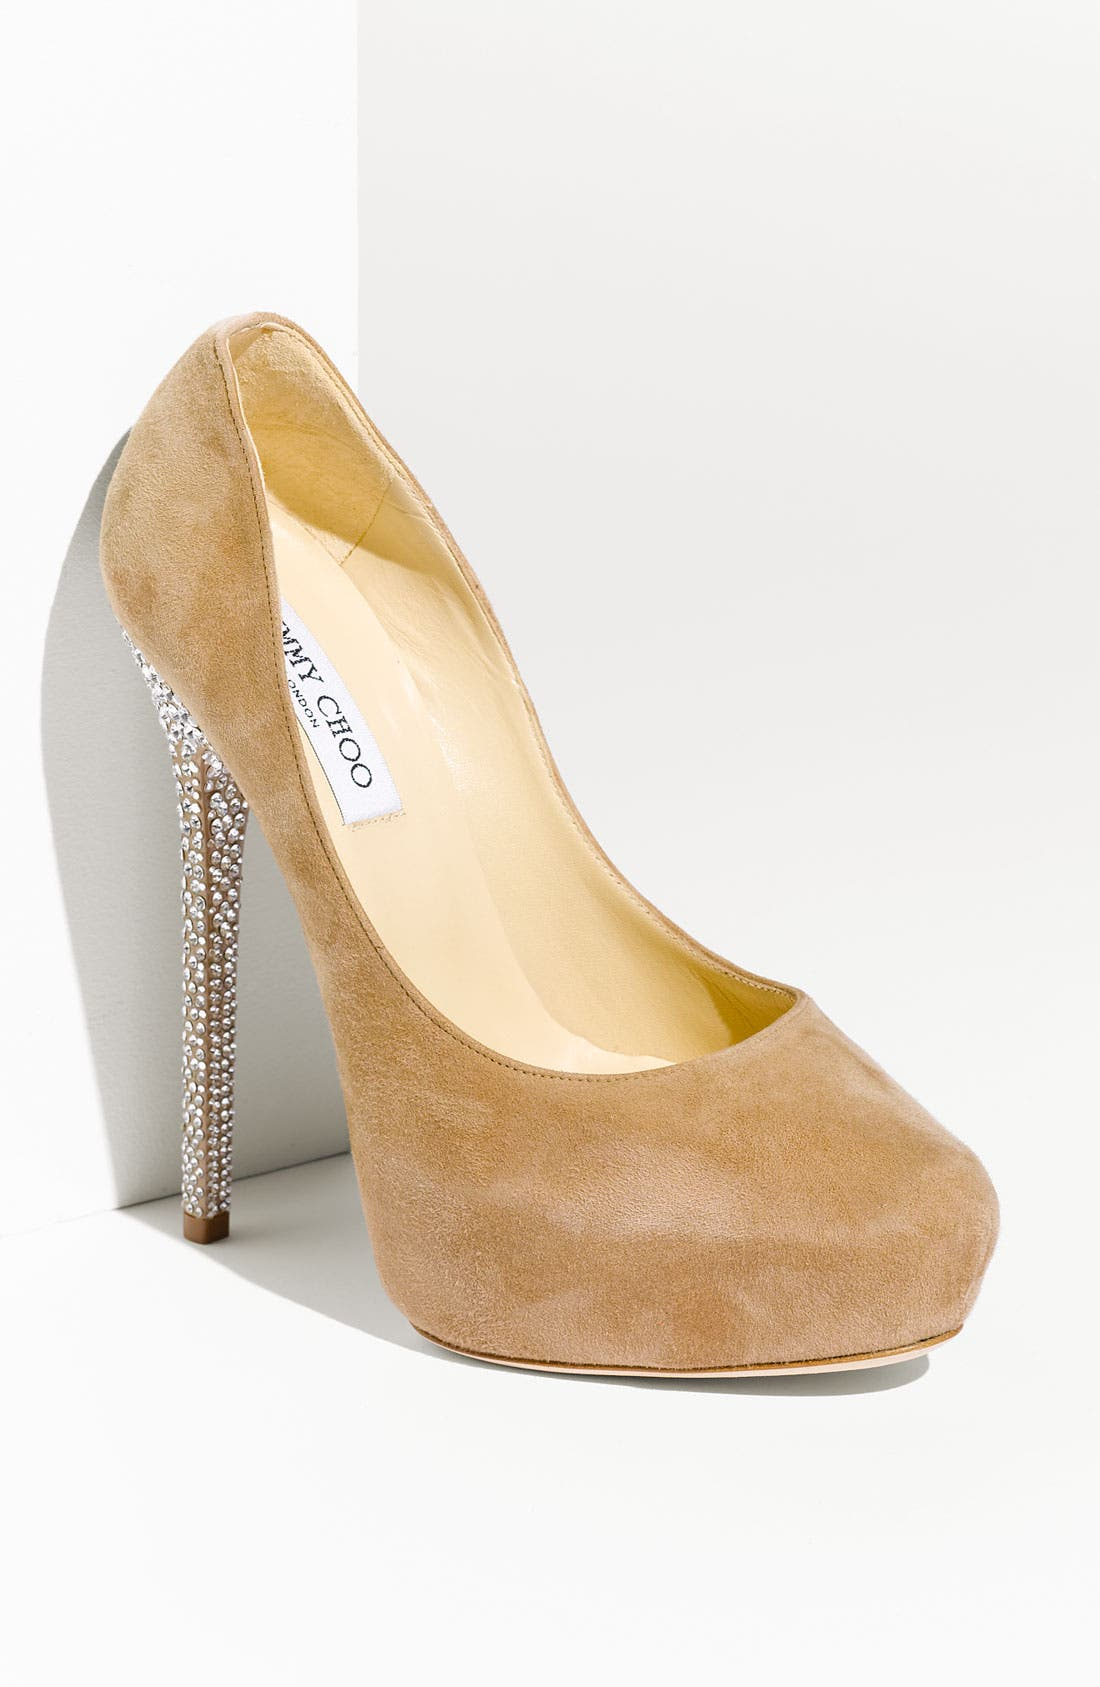 Alternate Image 1 Selected - Jimmy Choo 'Esam' Crystal Heel Platform Pump